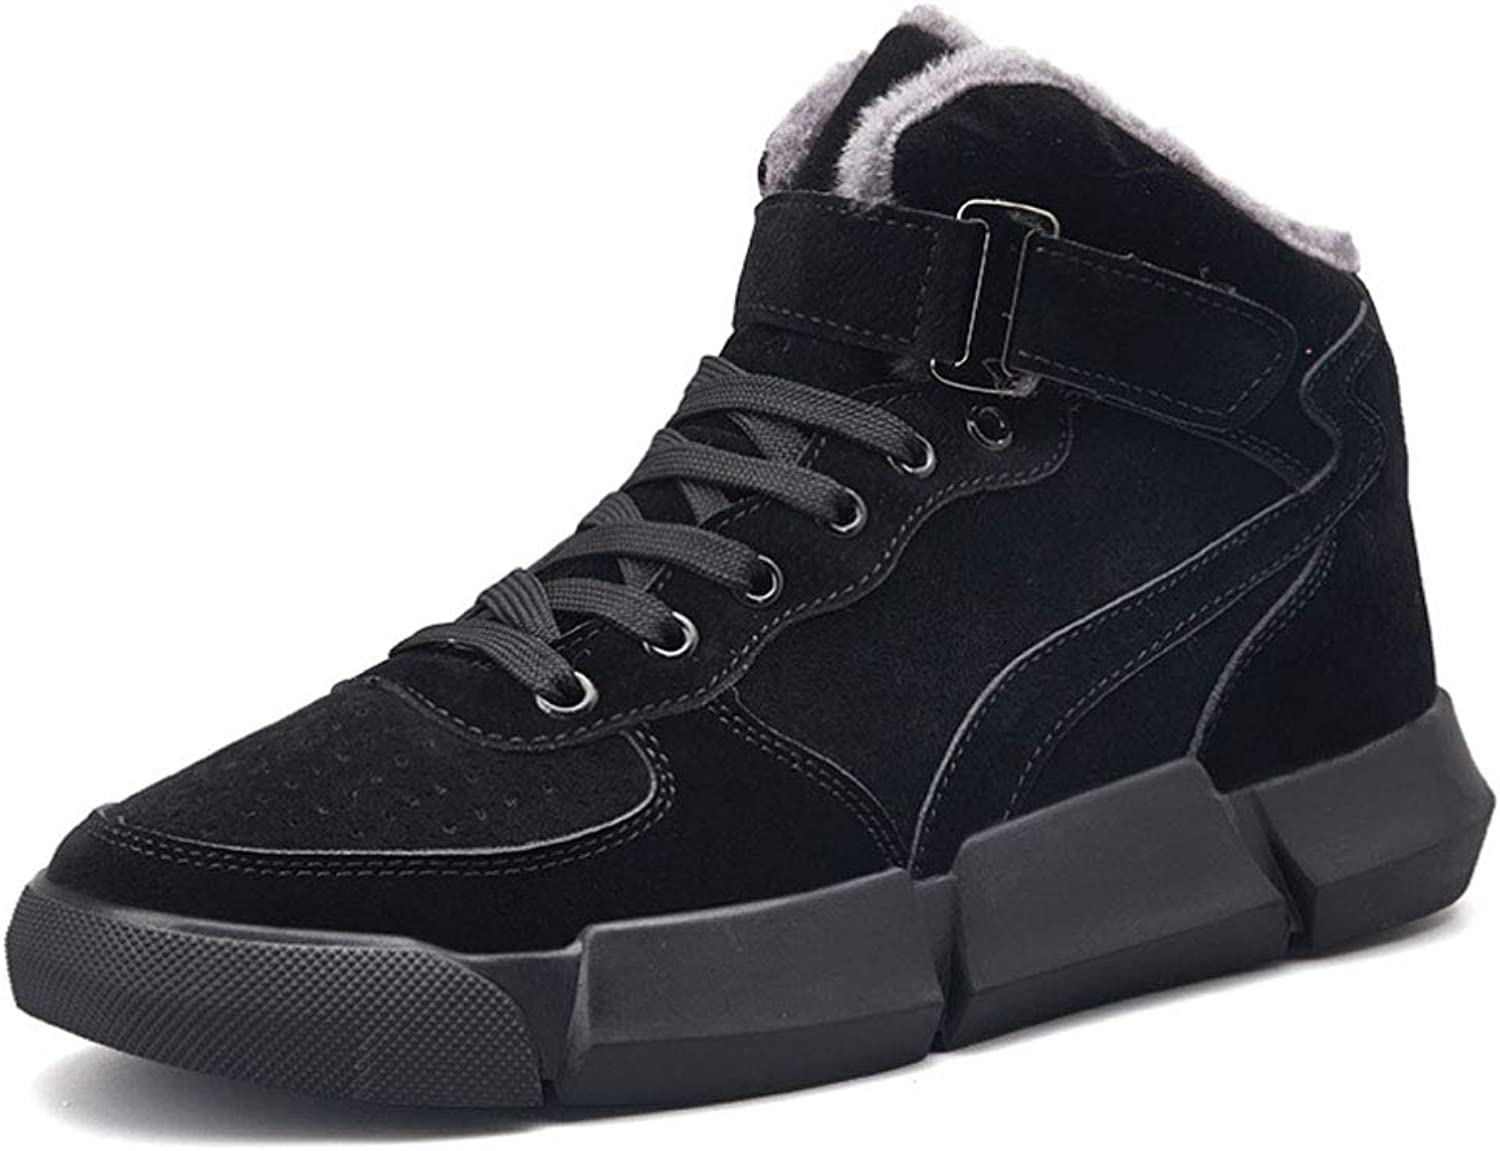 0a4692bf Men's shoes high-top Warm Casual shoes Cotton Trend Sneakers shoes ...